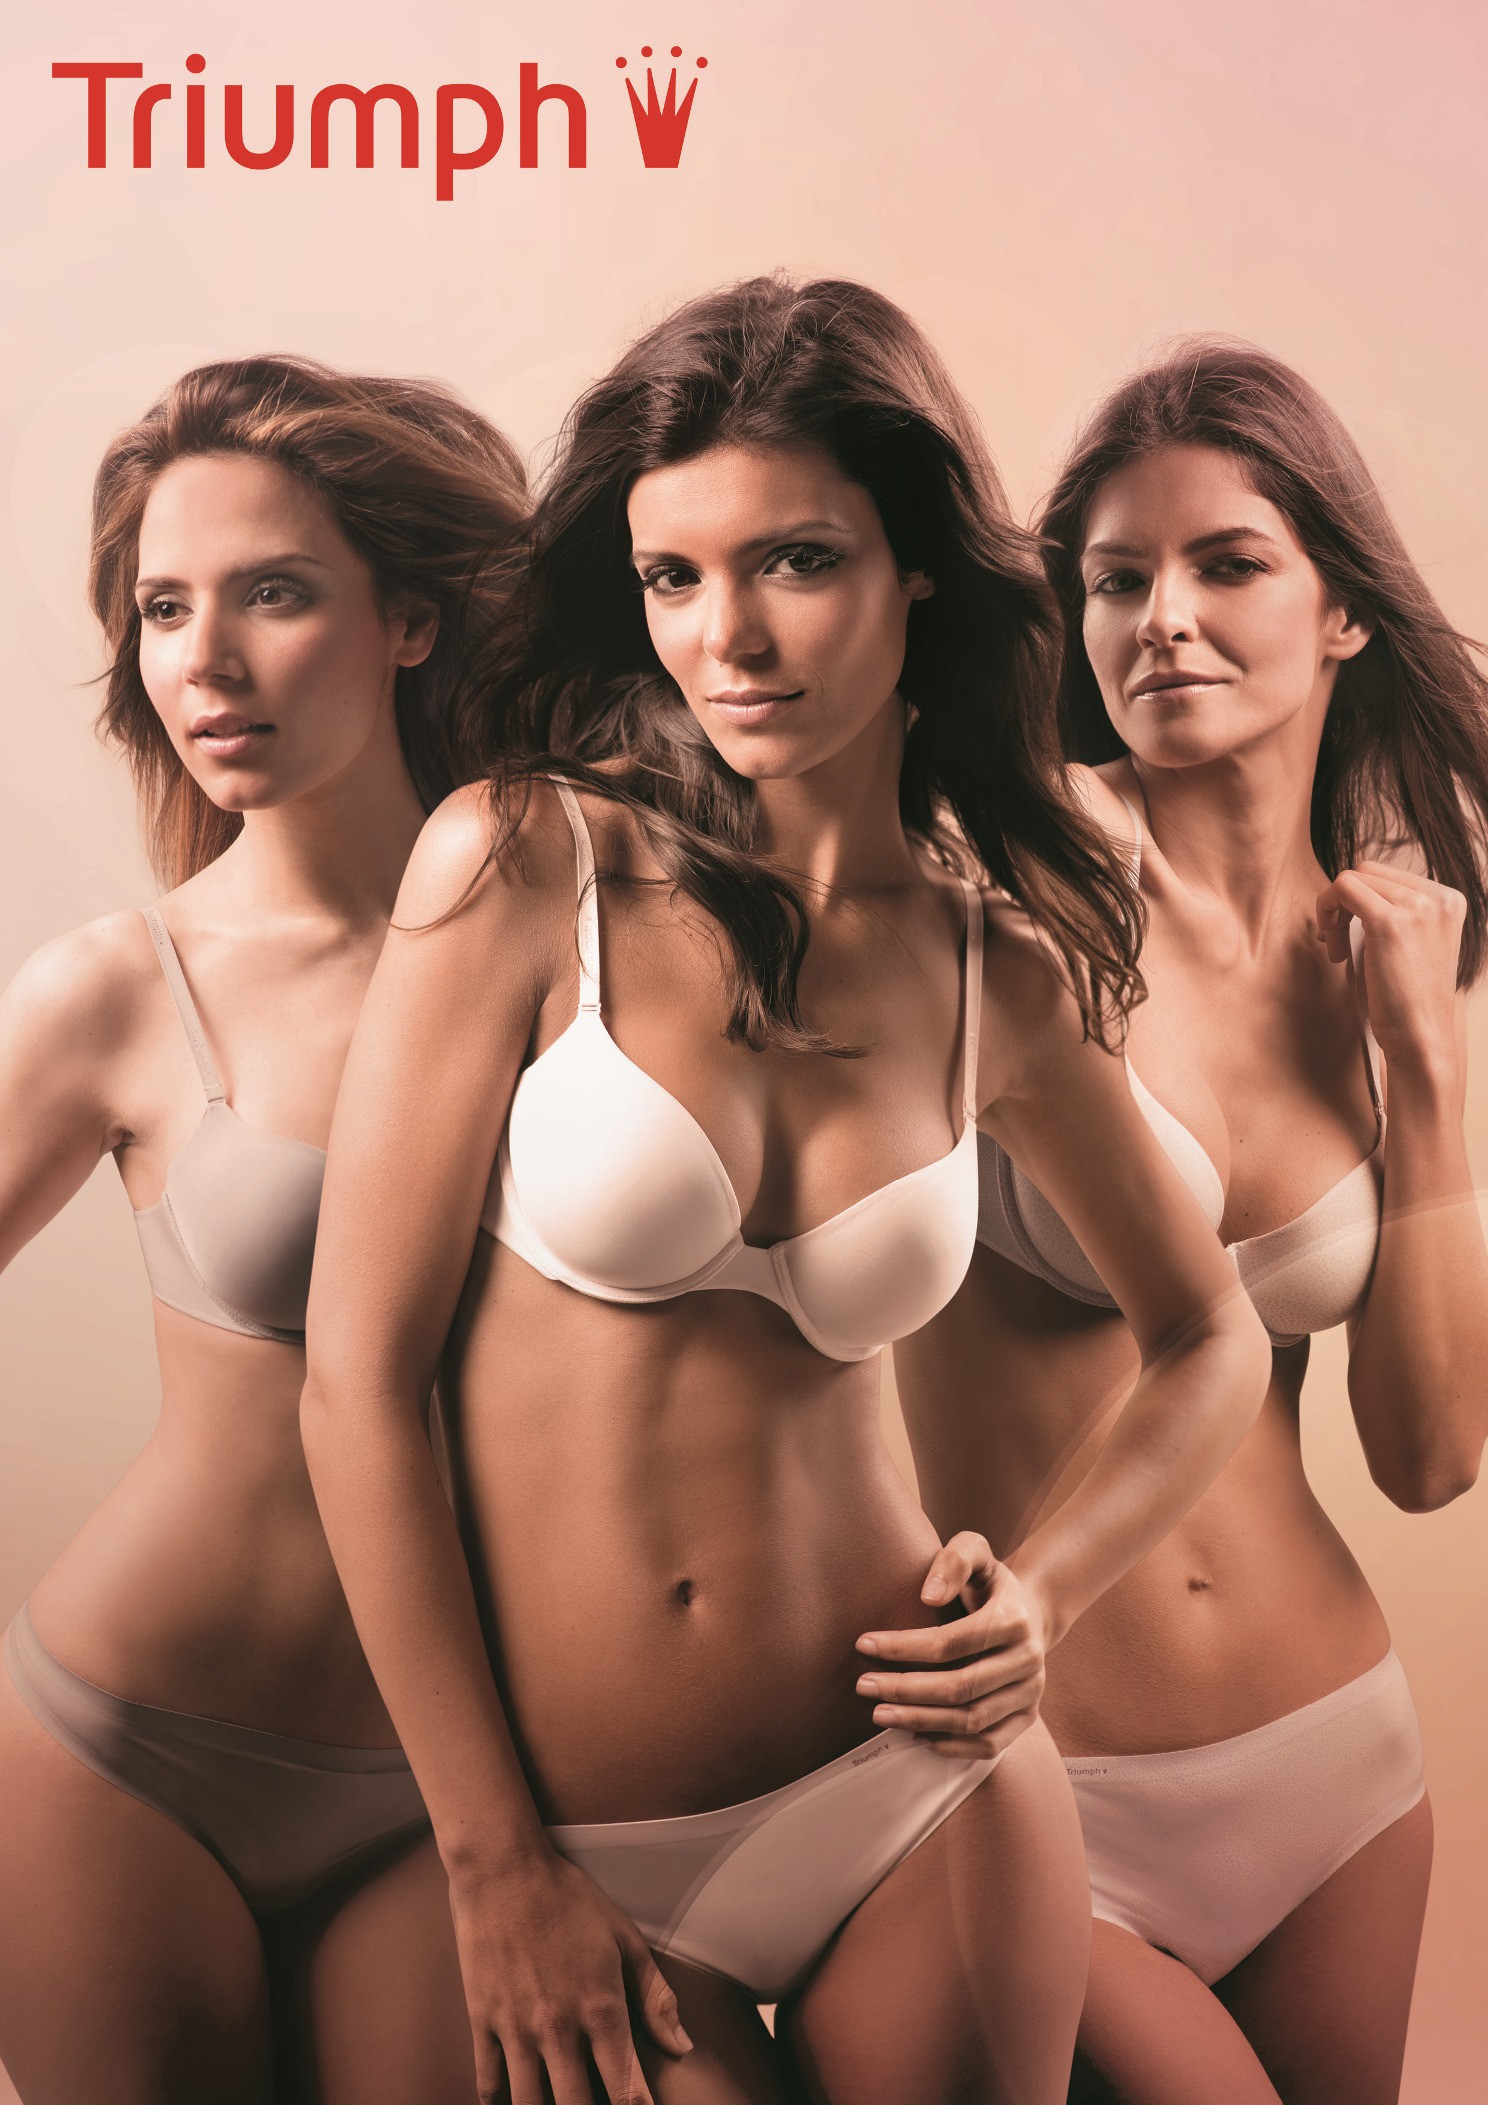 Triumph Campanha Body Make-Up.jpg